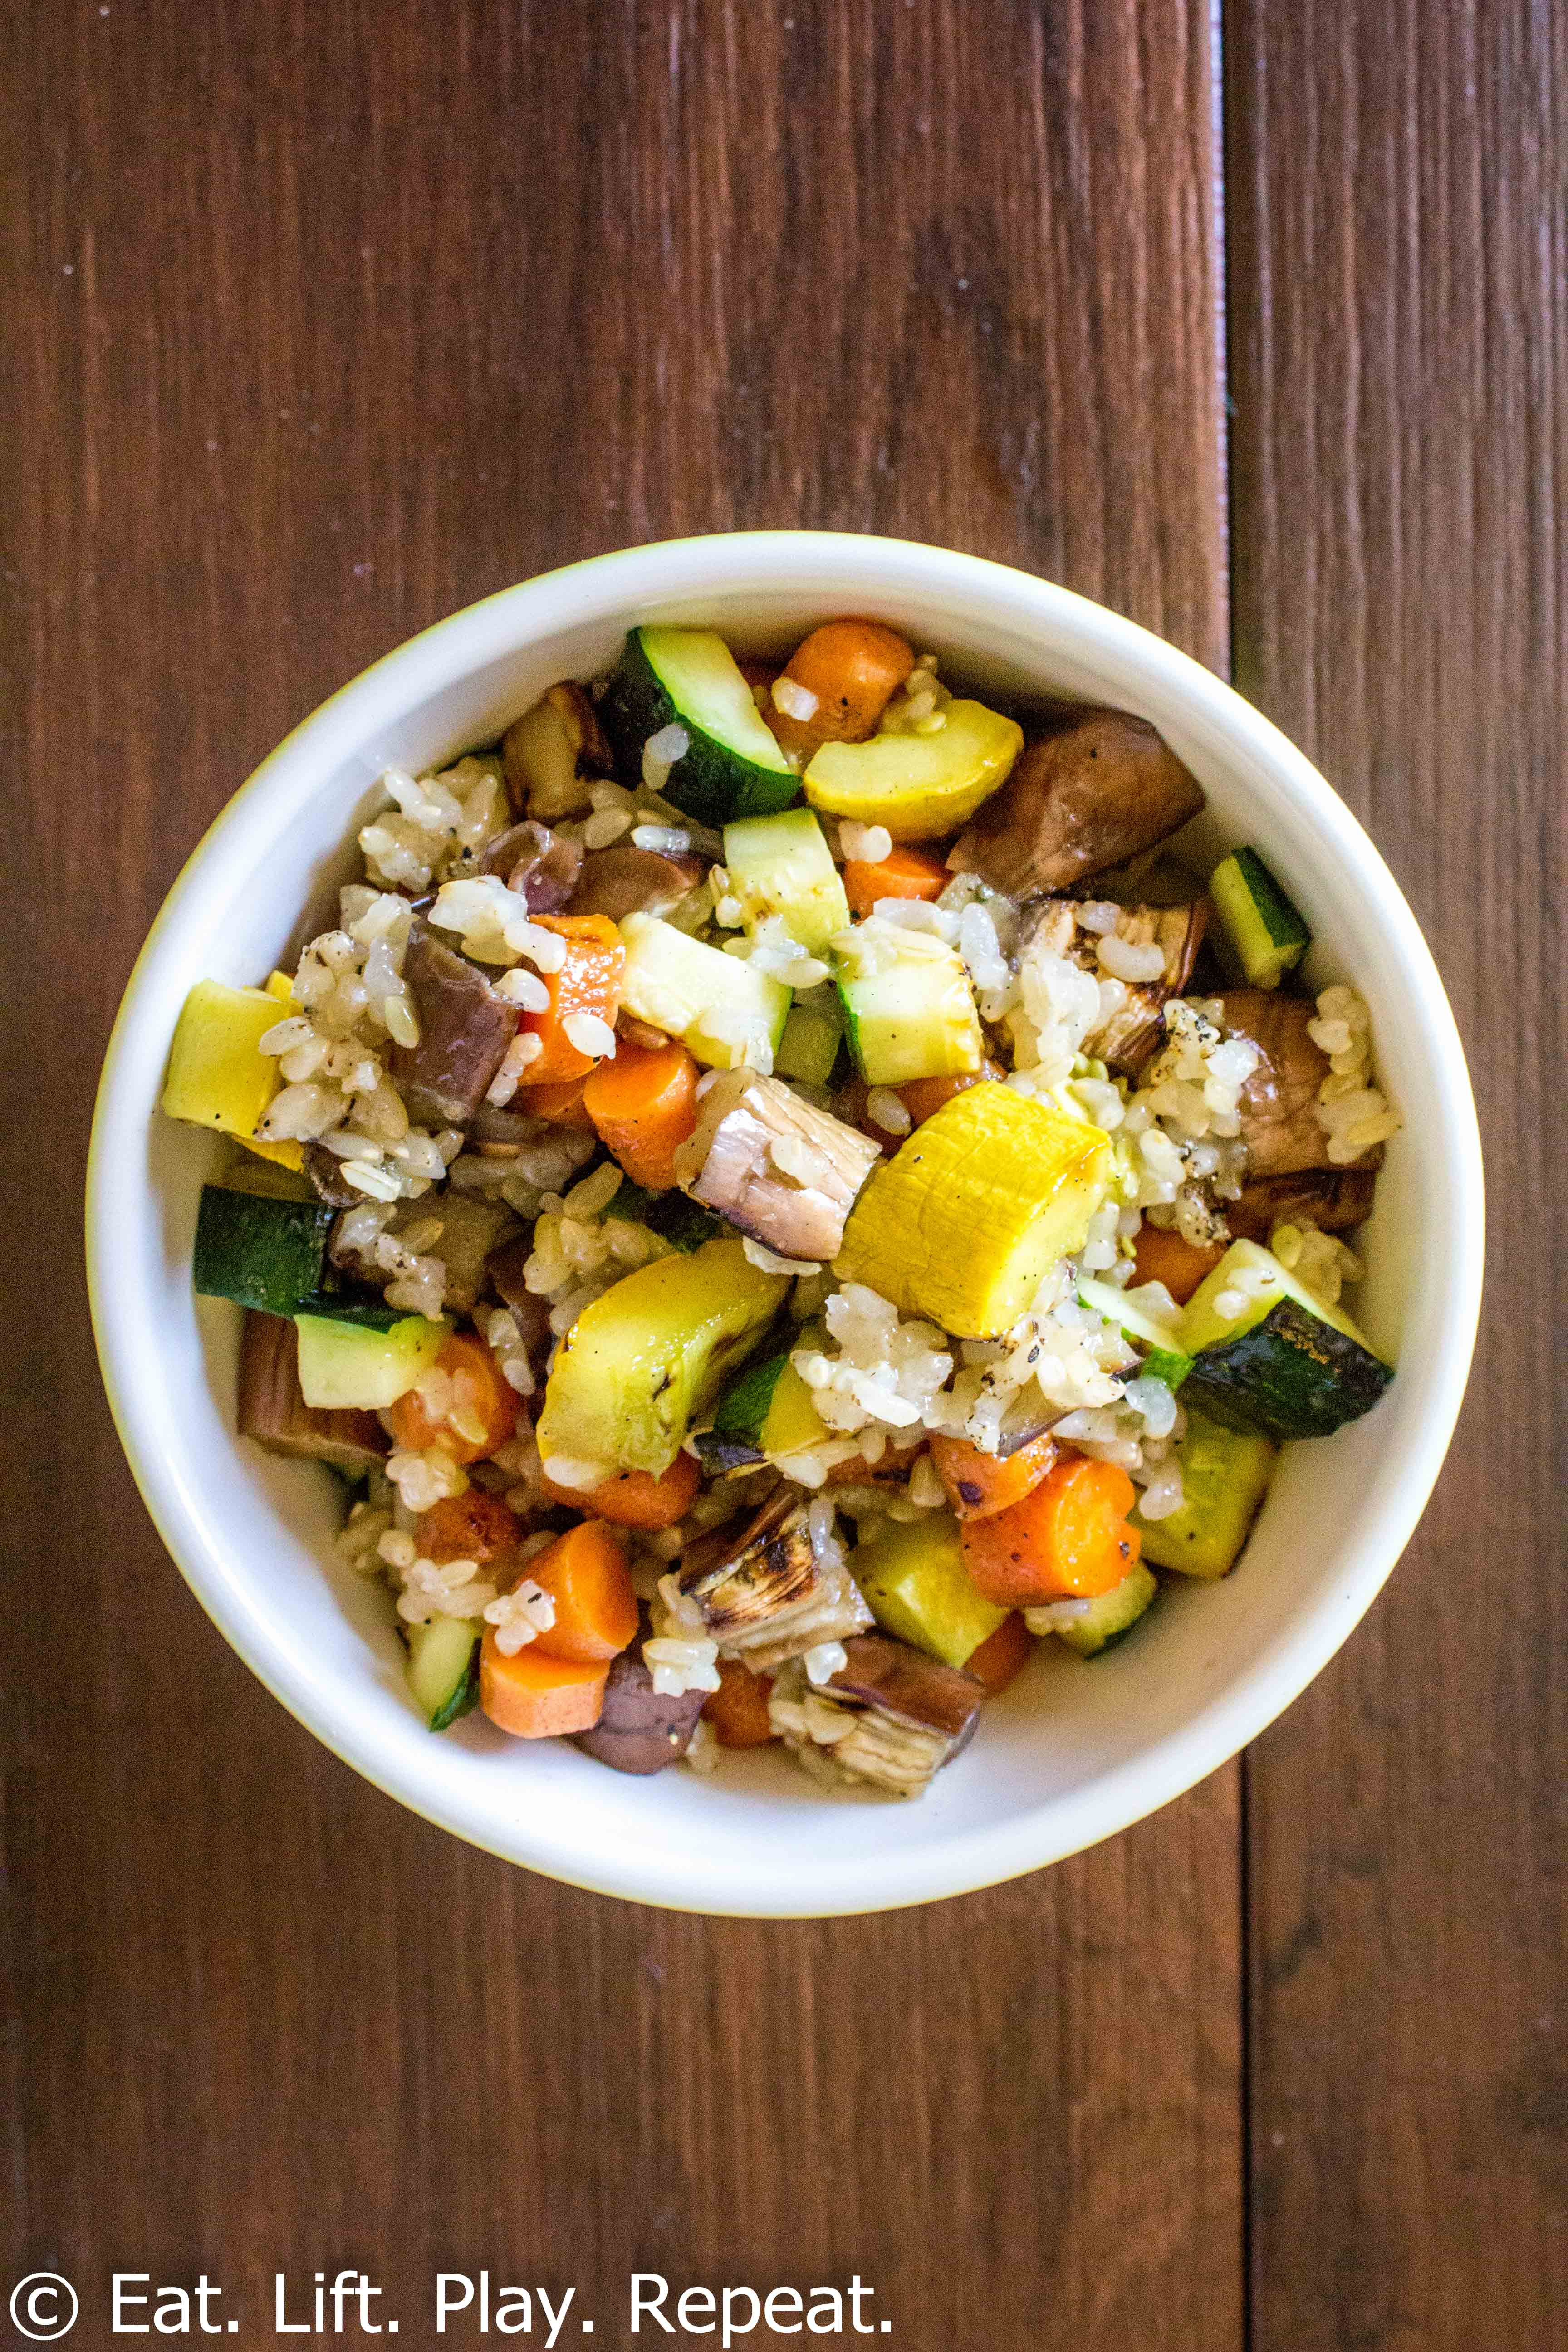 This recipe for Brown Rice with Grilled Vegetables can be made with ...